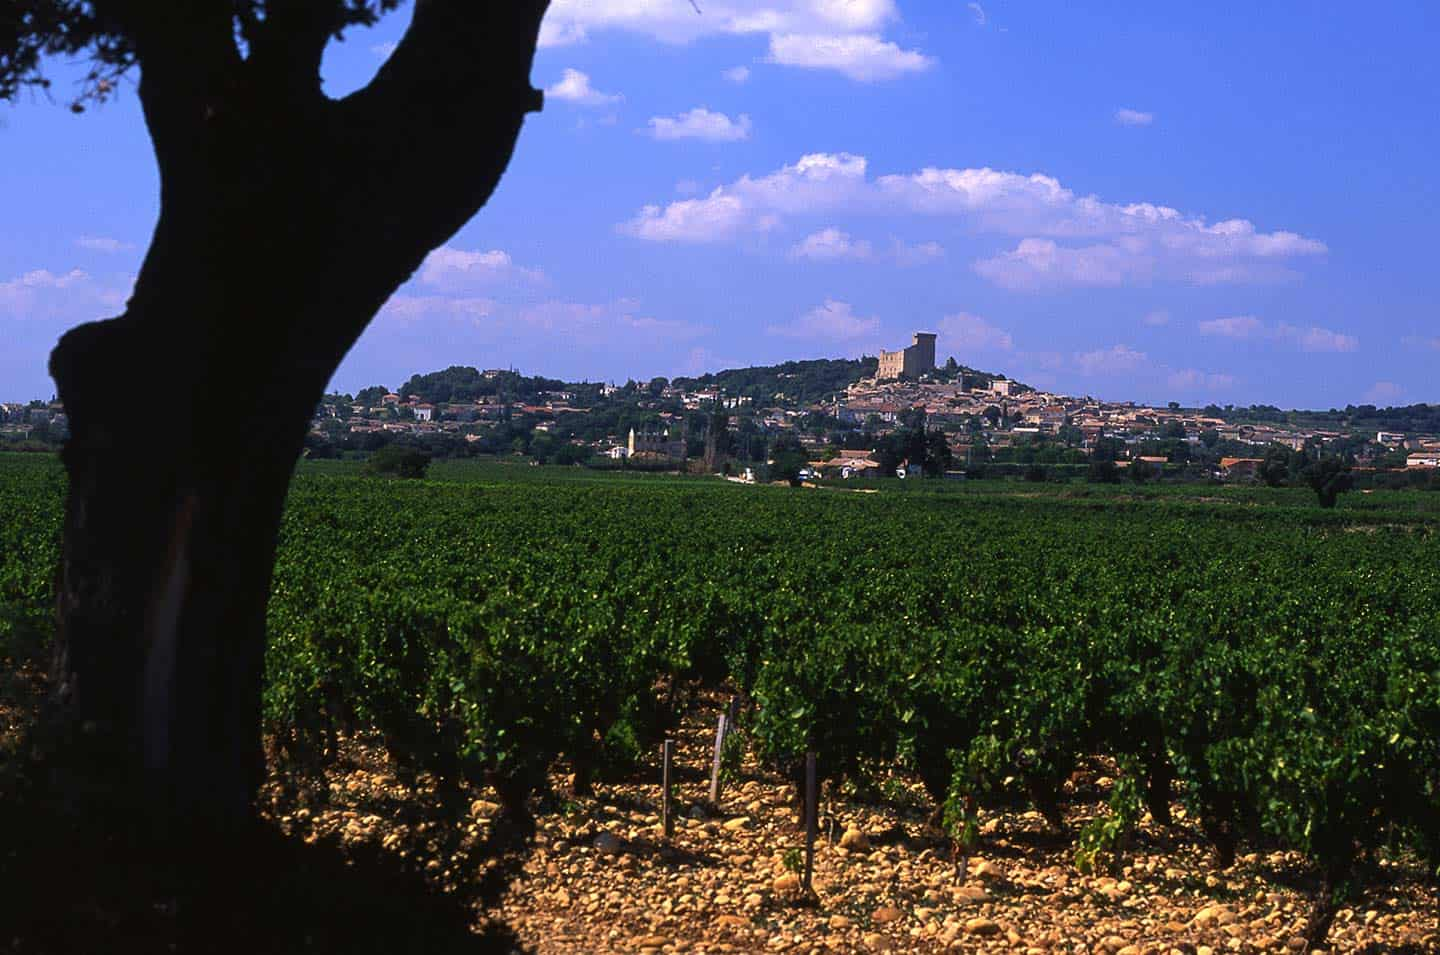 Image of vineyard at Chateauneuf-du-Pape